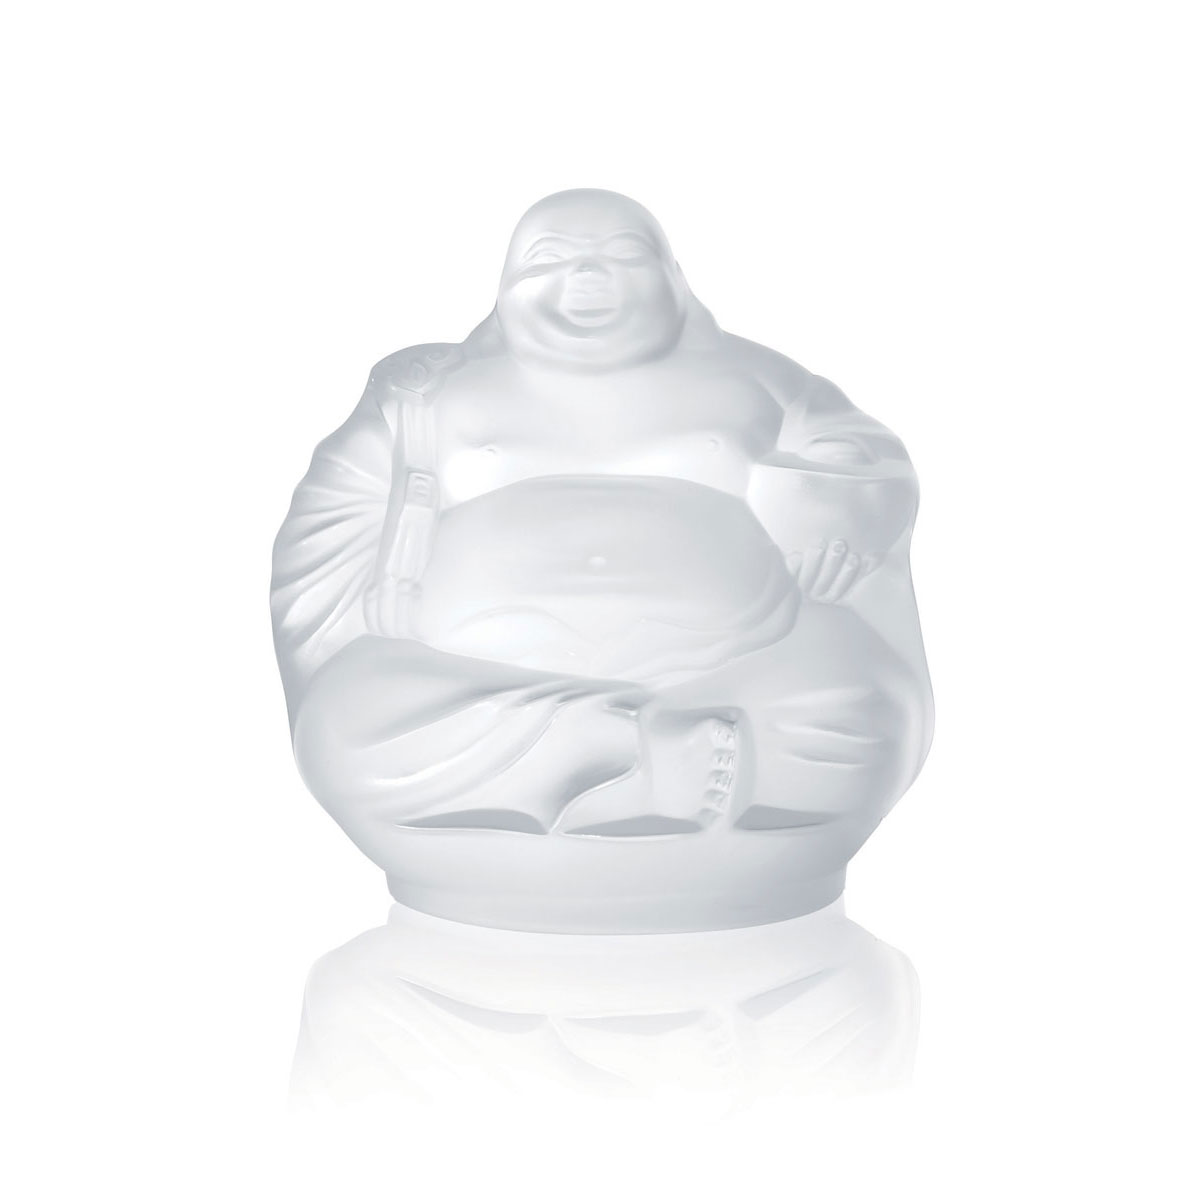 Lalique Crystal, Figure Happy Buddha